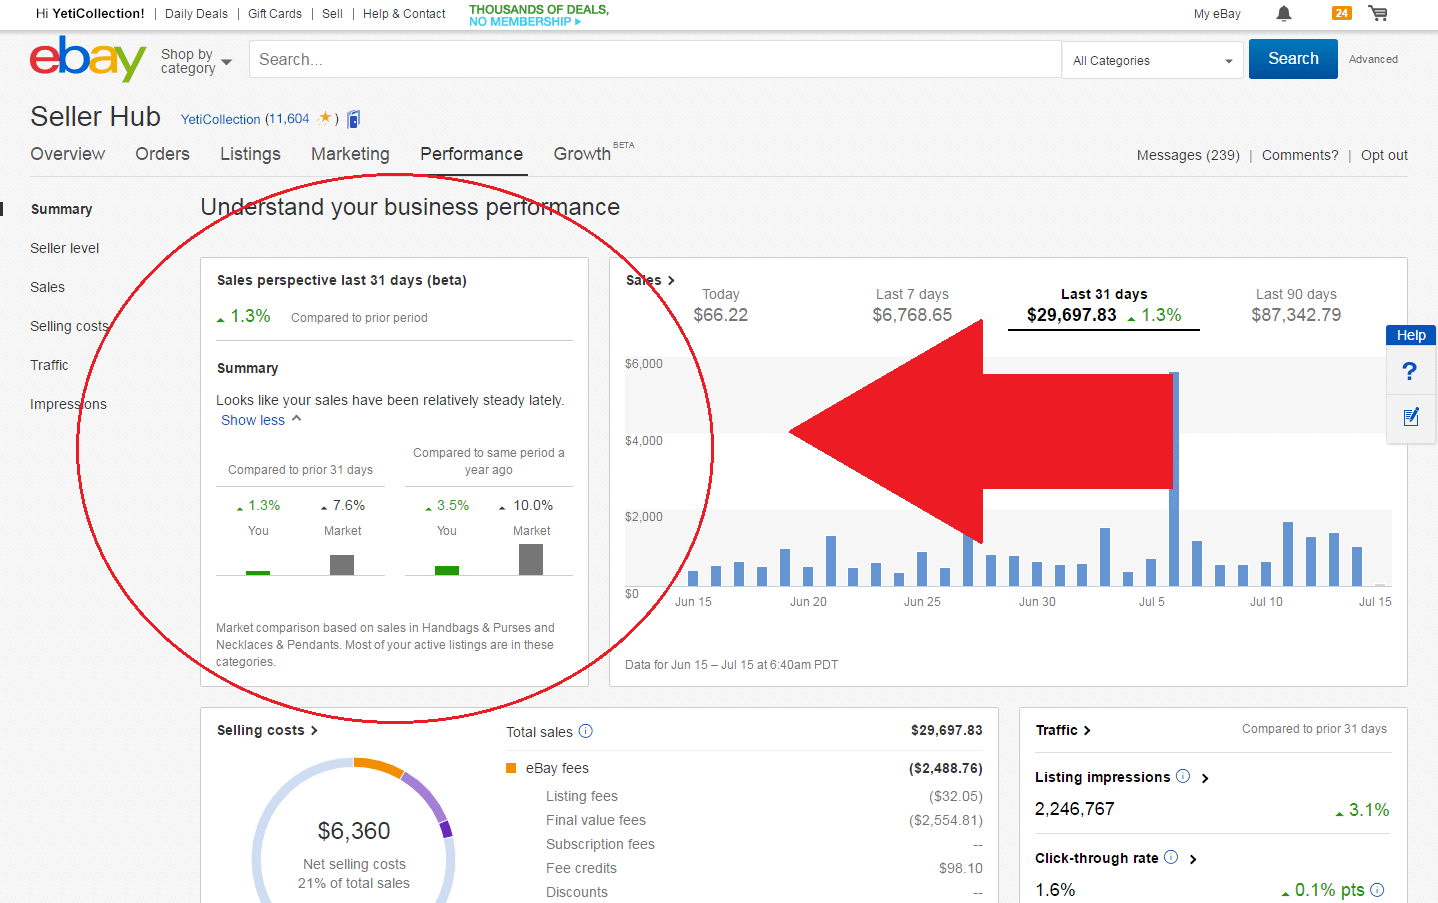 How We Used Ebay Analytics To Take Our Business To The Next Level